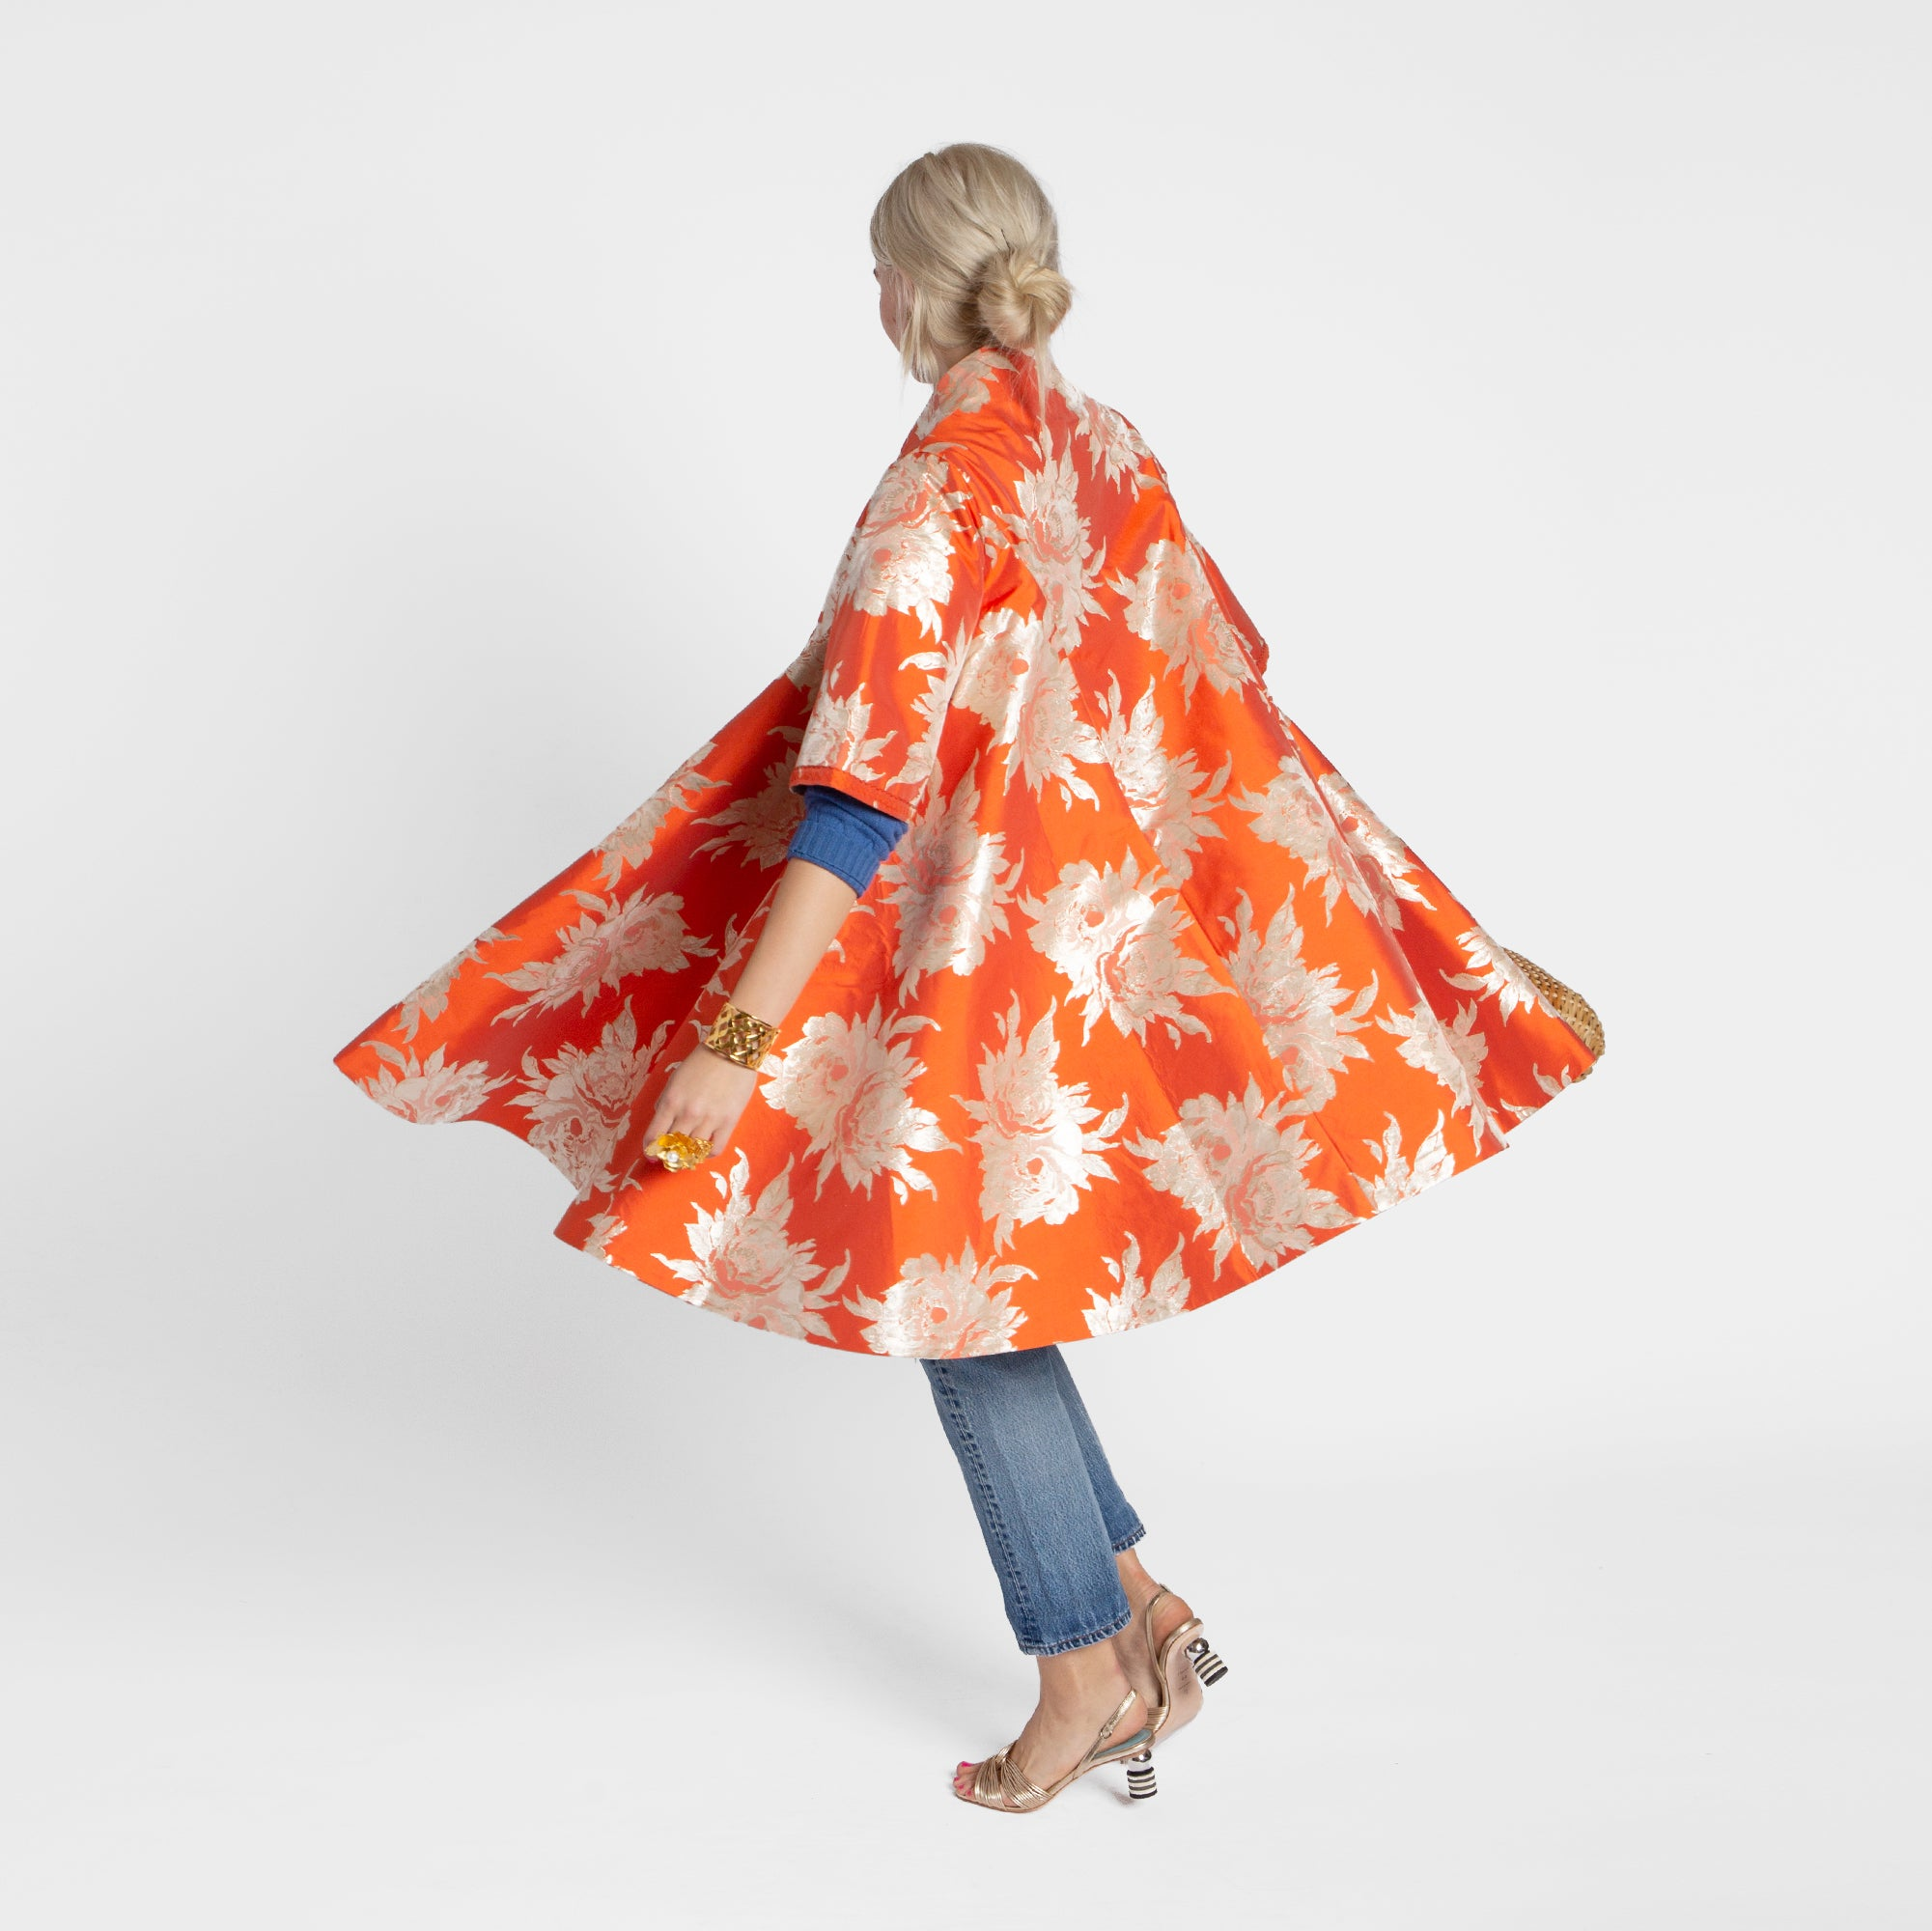 Metallic Jacquard Swing Coat Orange - Frances Valentine